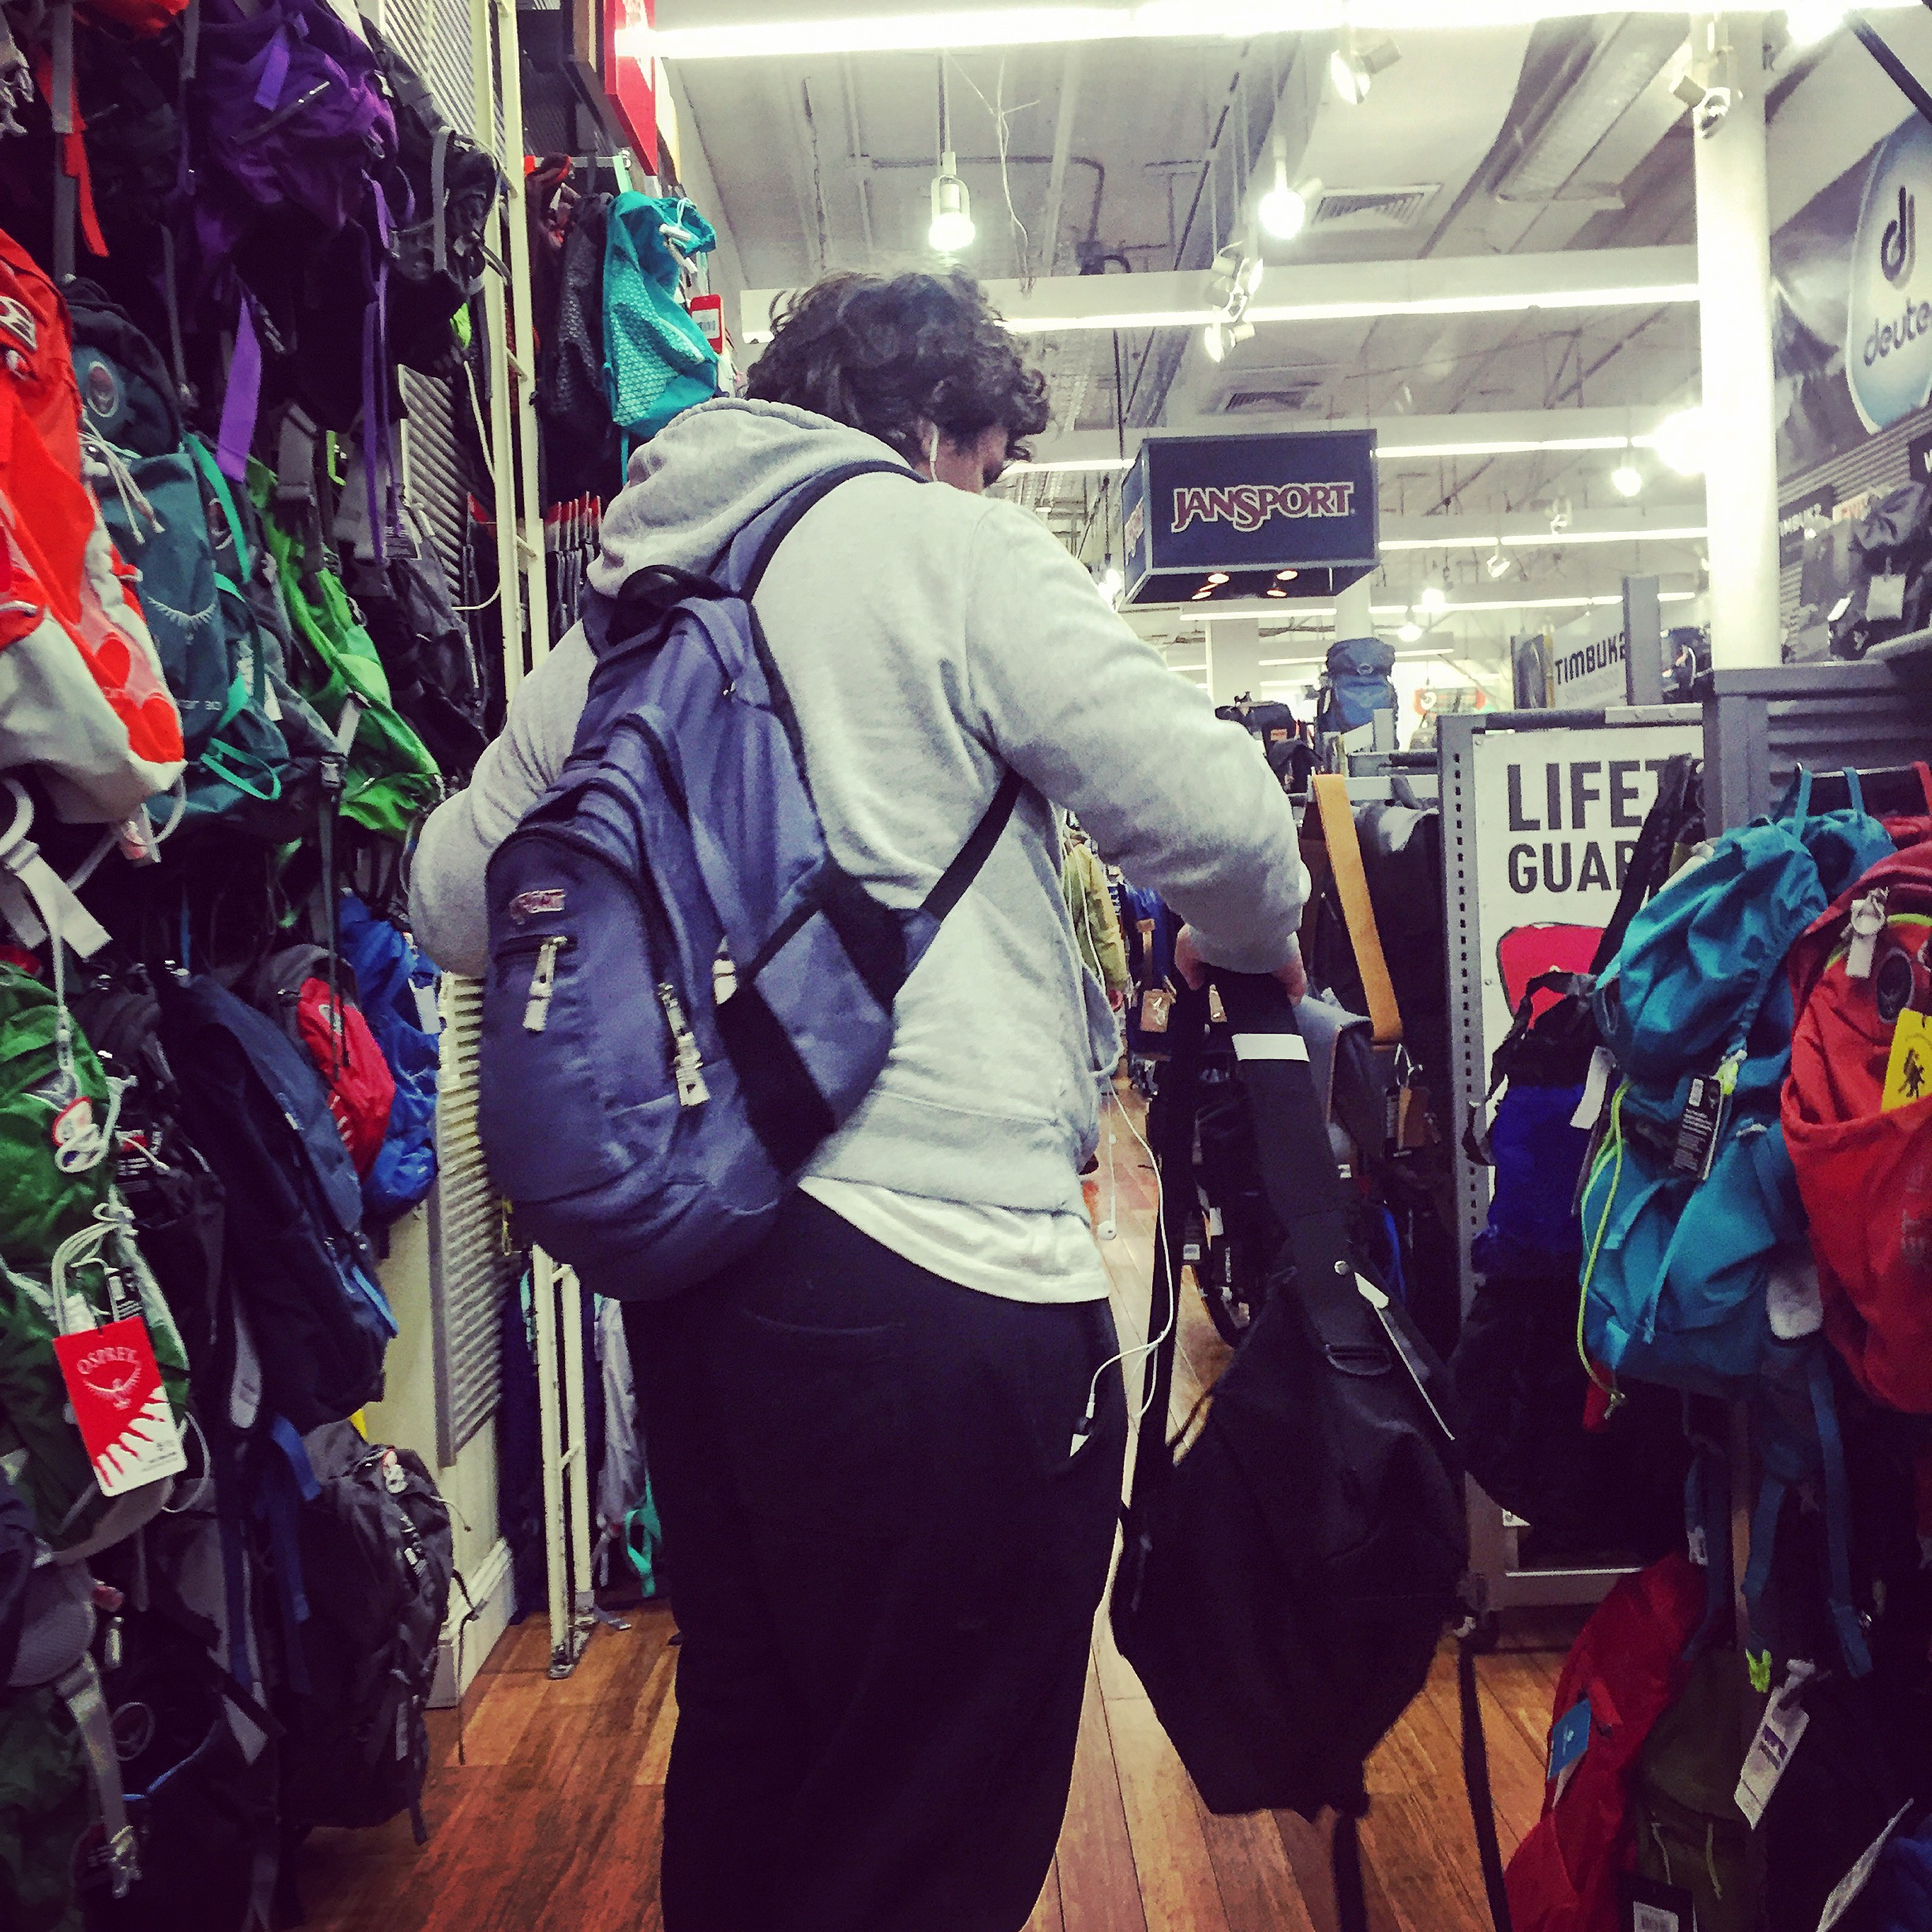 A customer tries on a backpack.